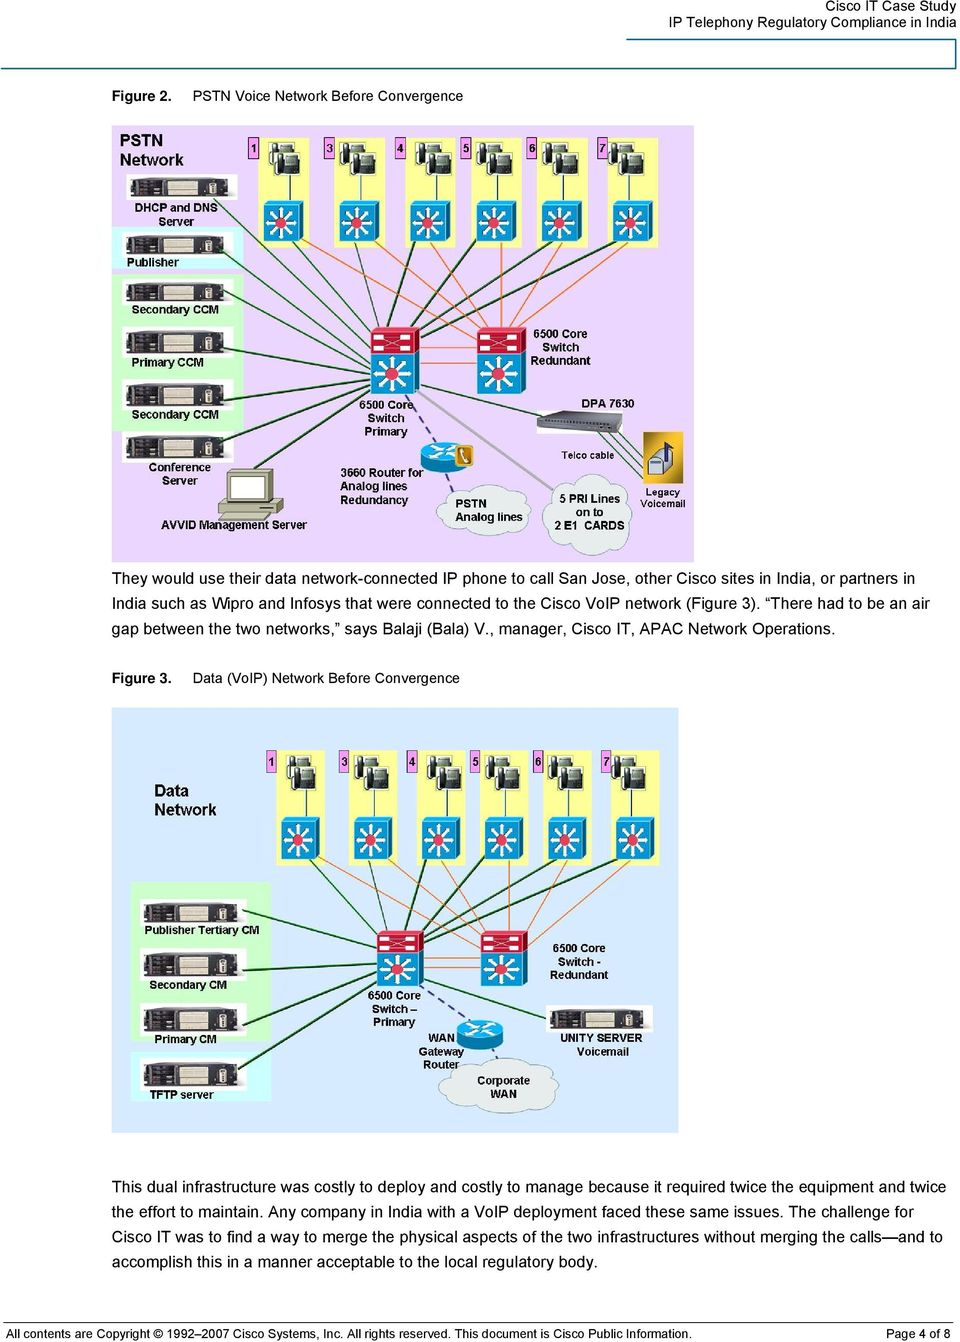 connected to the Cisco VoIP network (Figure 3). There had to be an air gap between the two networks, says Balaji (Bala) V., manager, Cisco IT, APAC Network Operations. Figure 3.